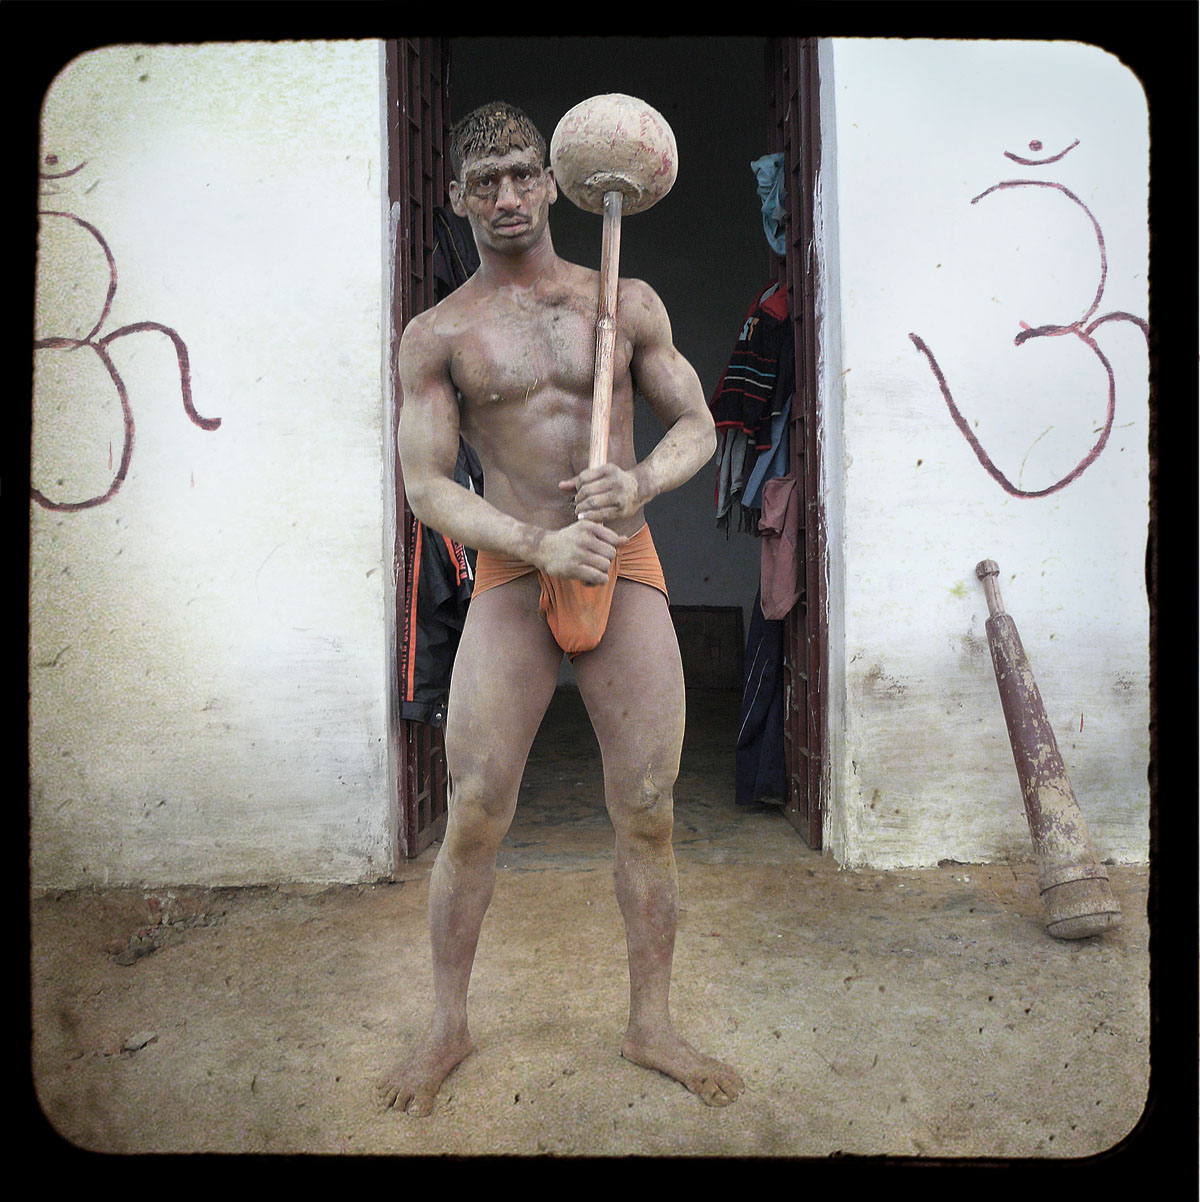 The Accidental Sensuality Of Ancient Indian Wrestling | HuffPost